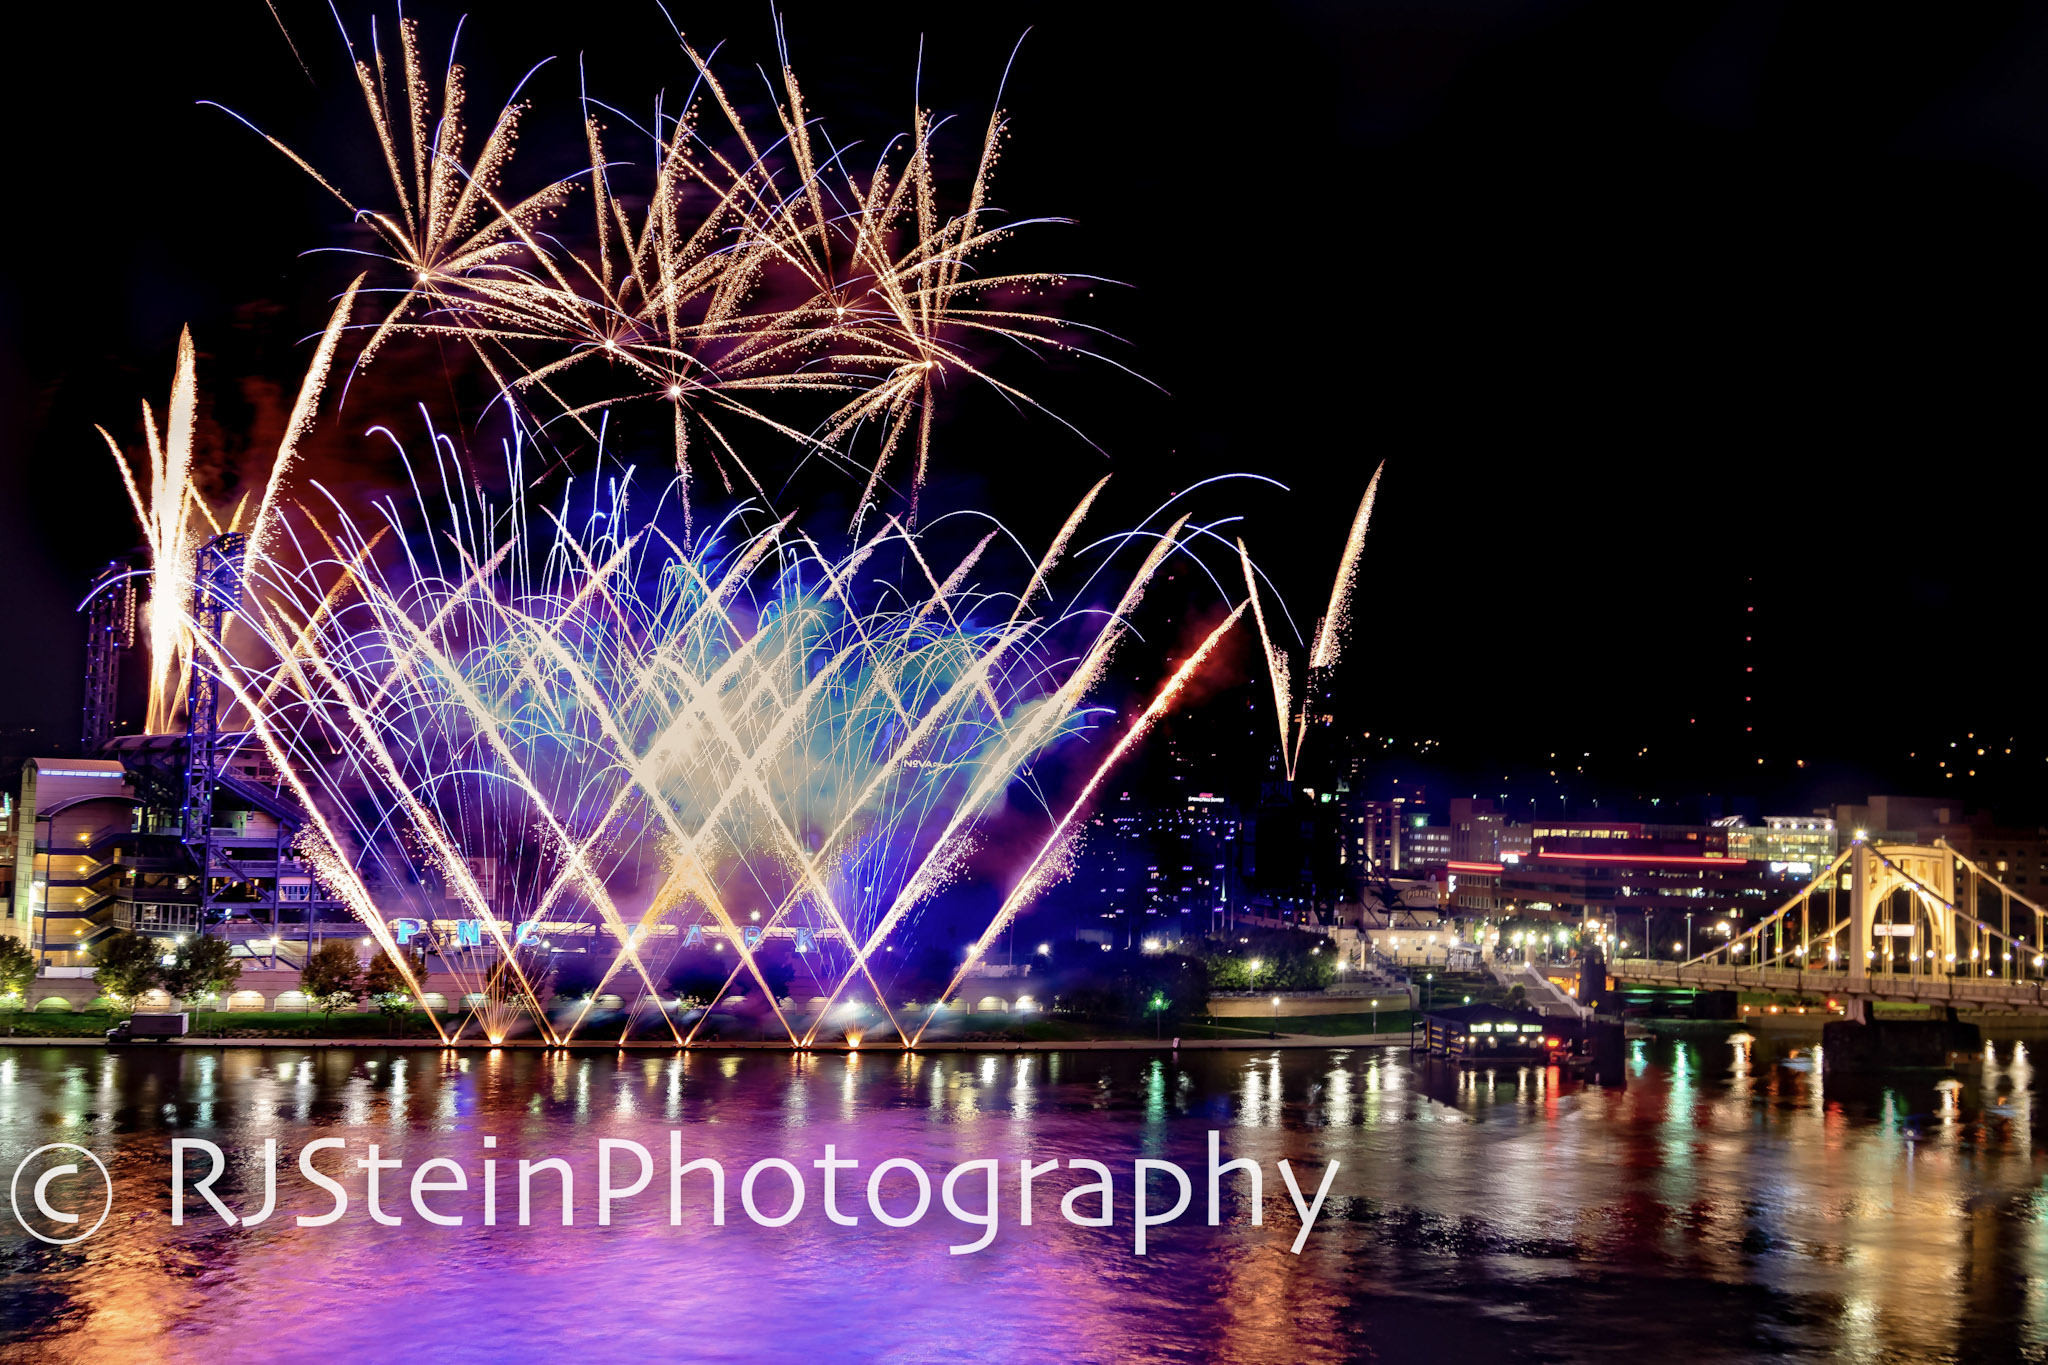 pnc park fireworks deluxe, pittsburgh, 2018